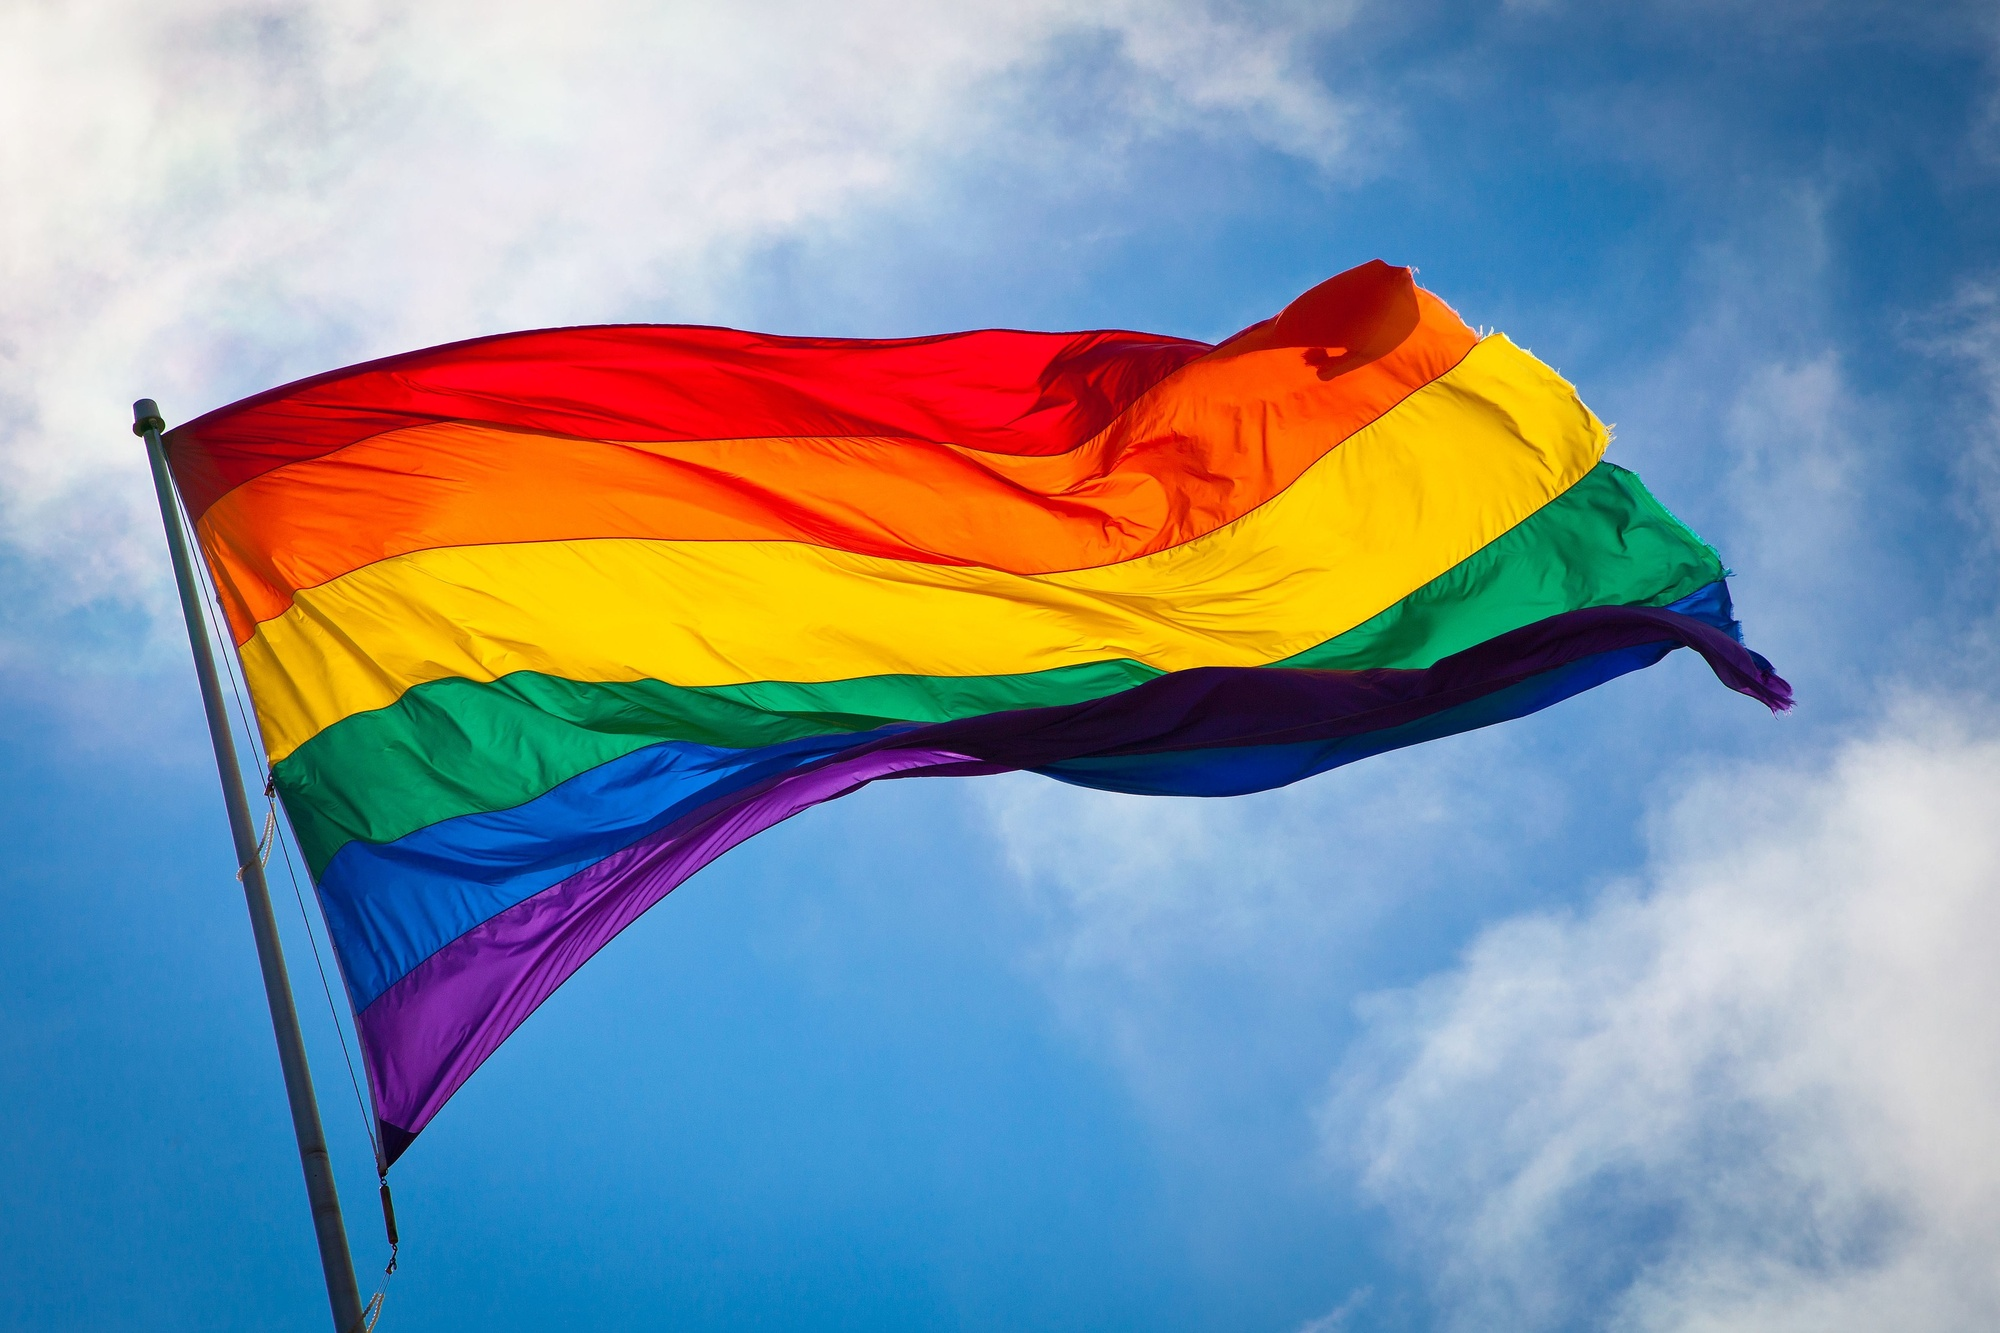 The Rainbow Flag waving in the wind at San Francisco's Castro District. Photo: Benson Kua. Image used through Creative Commons Attribution-ShareAlike 2.0 Generic